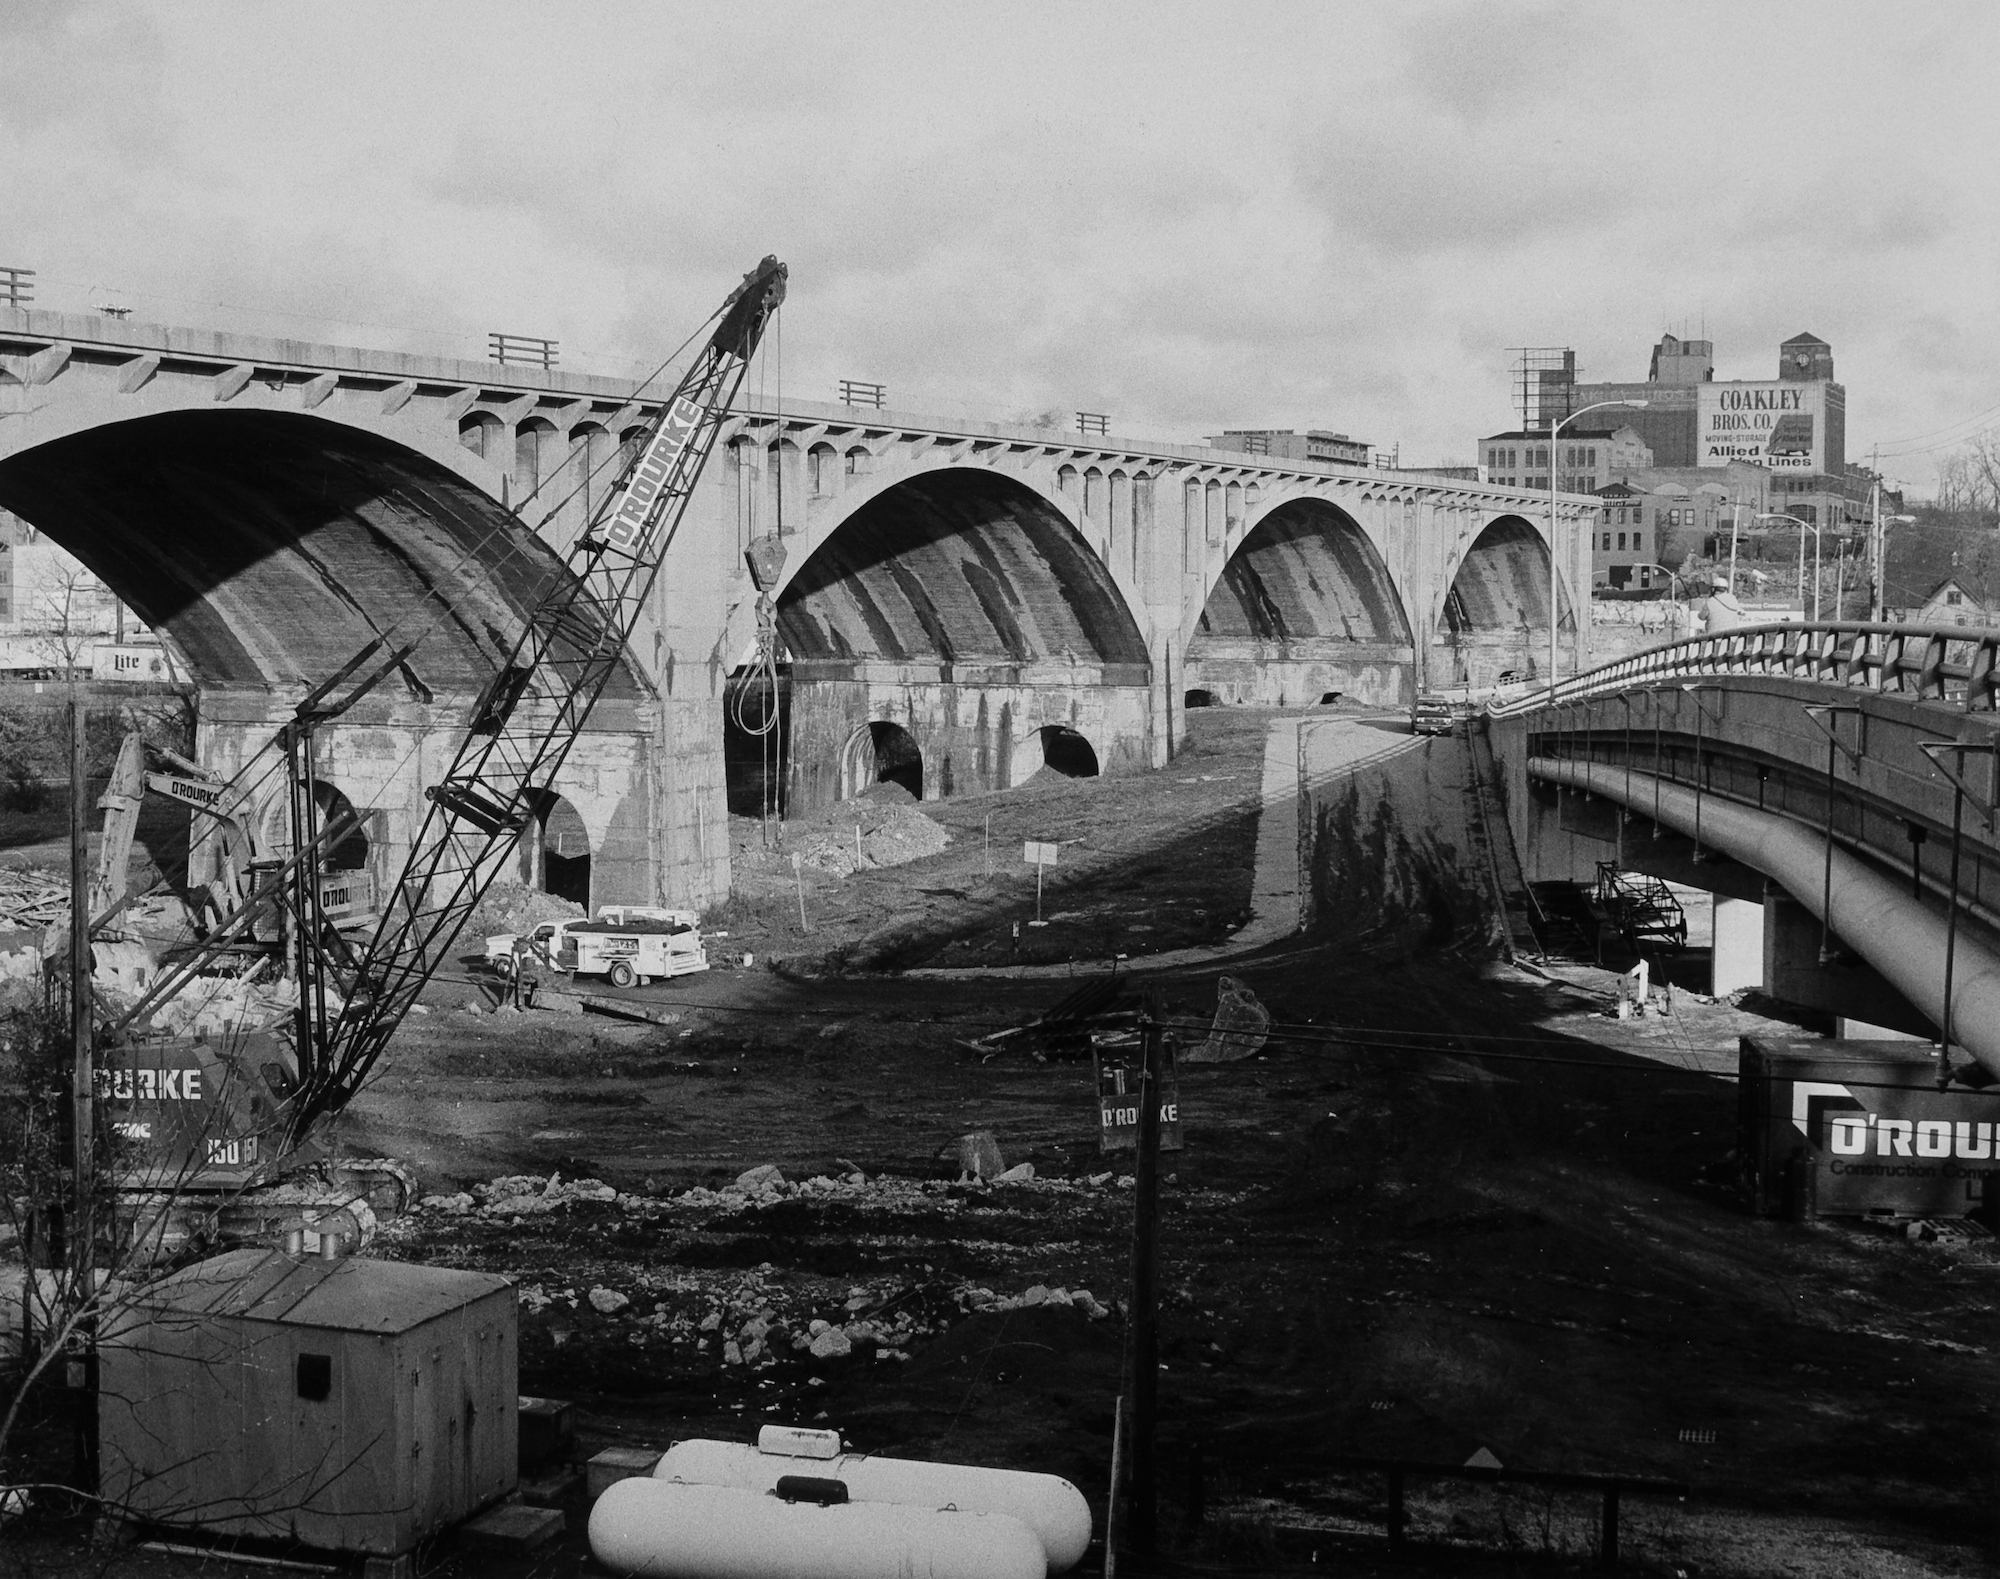 The Wisconsin Avenue viaduct as it was reconstructed and its surroundings torn down.